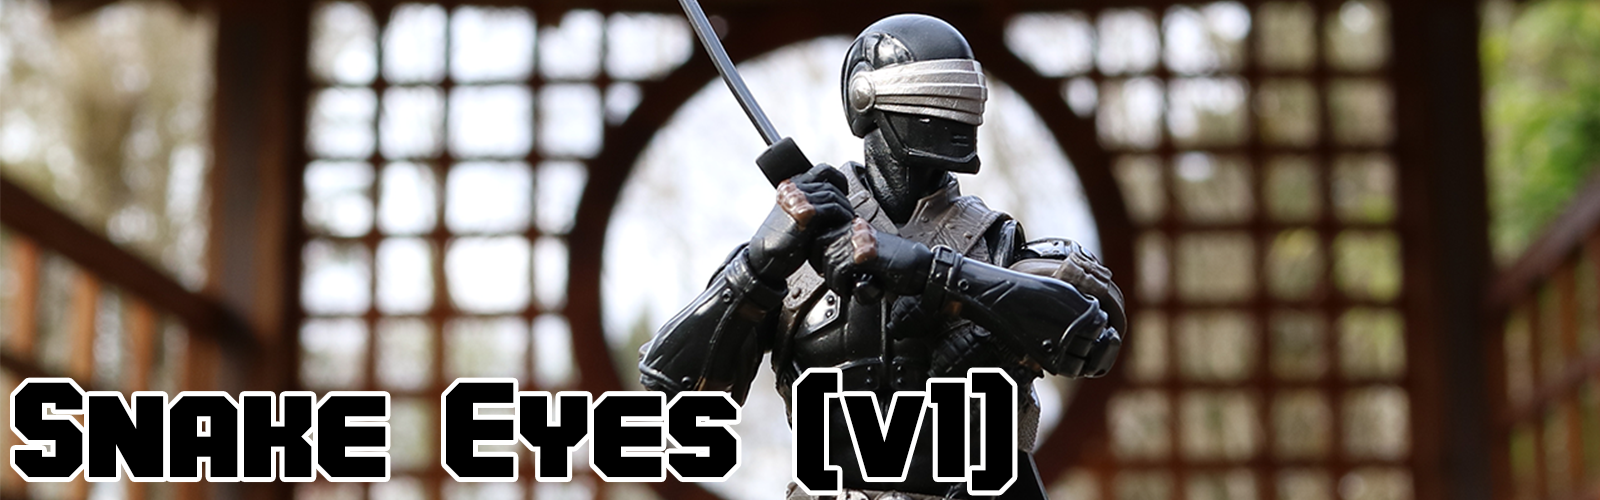 Snake Eyes Header Image